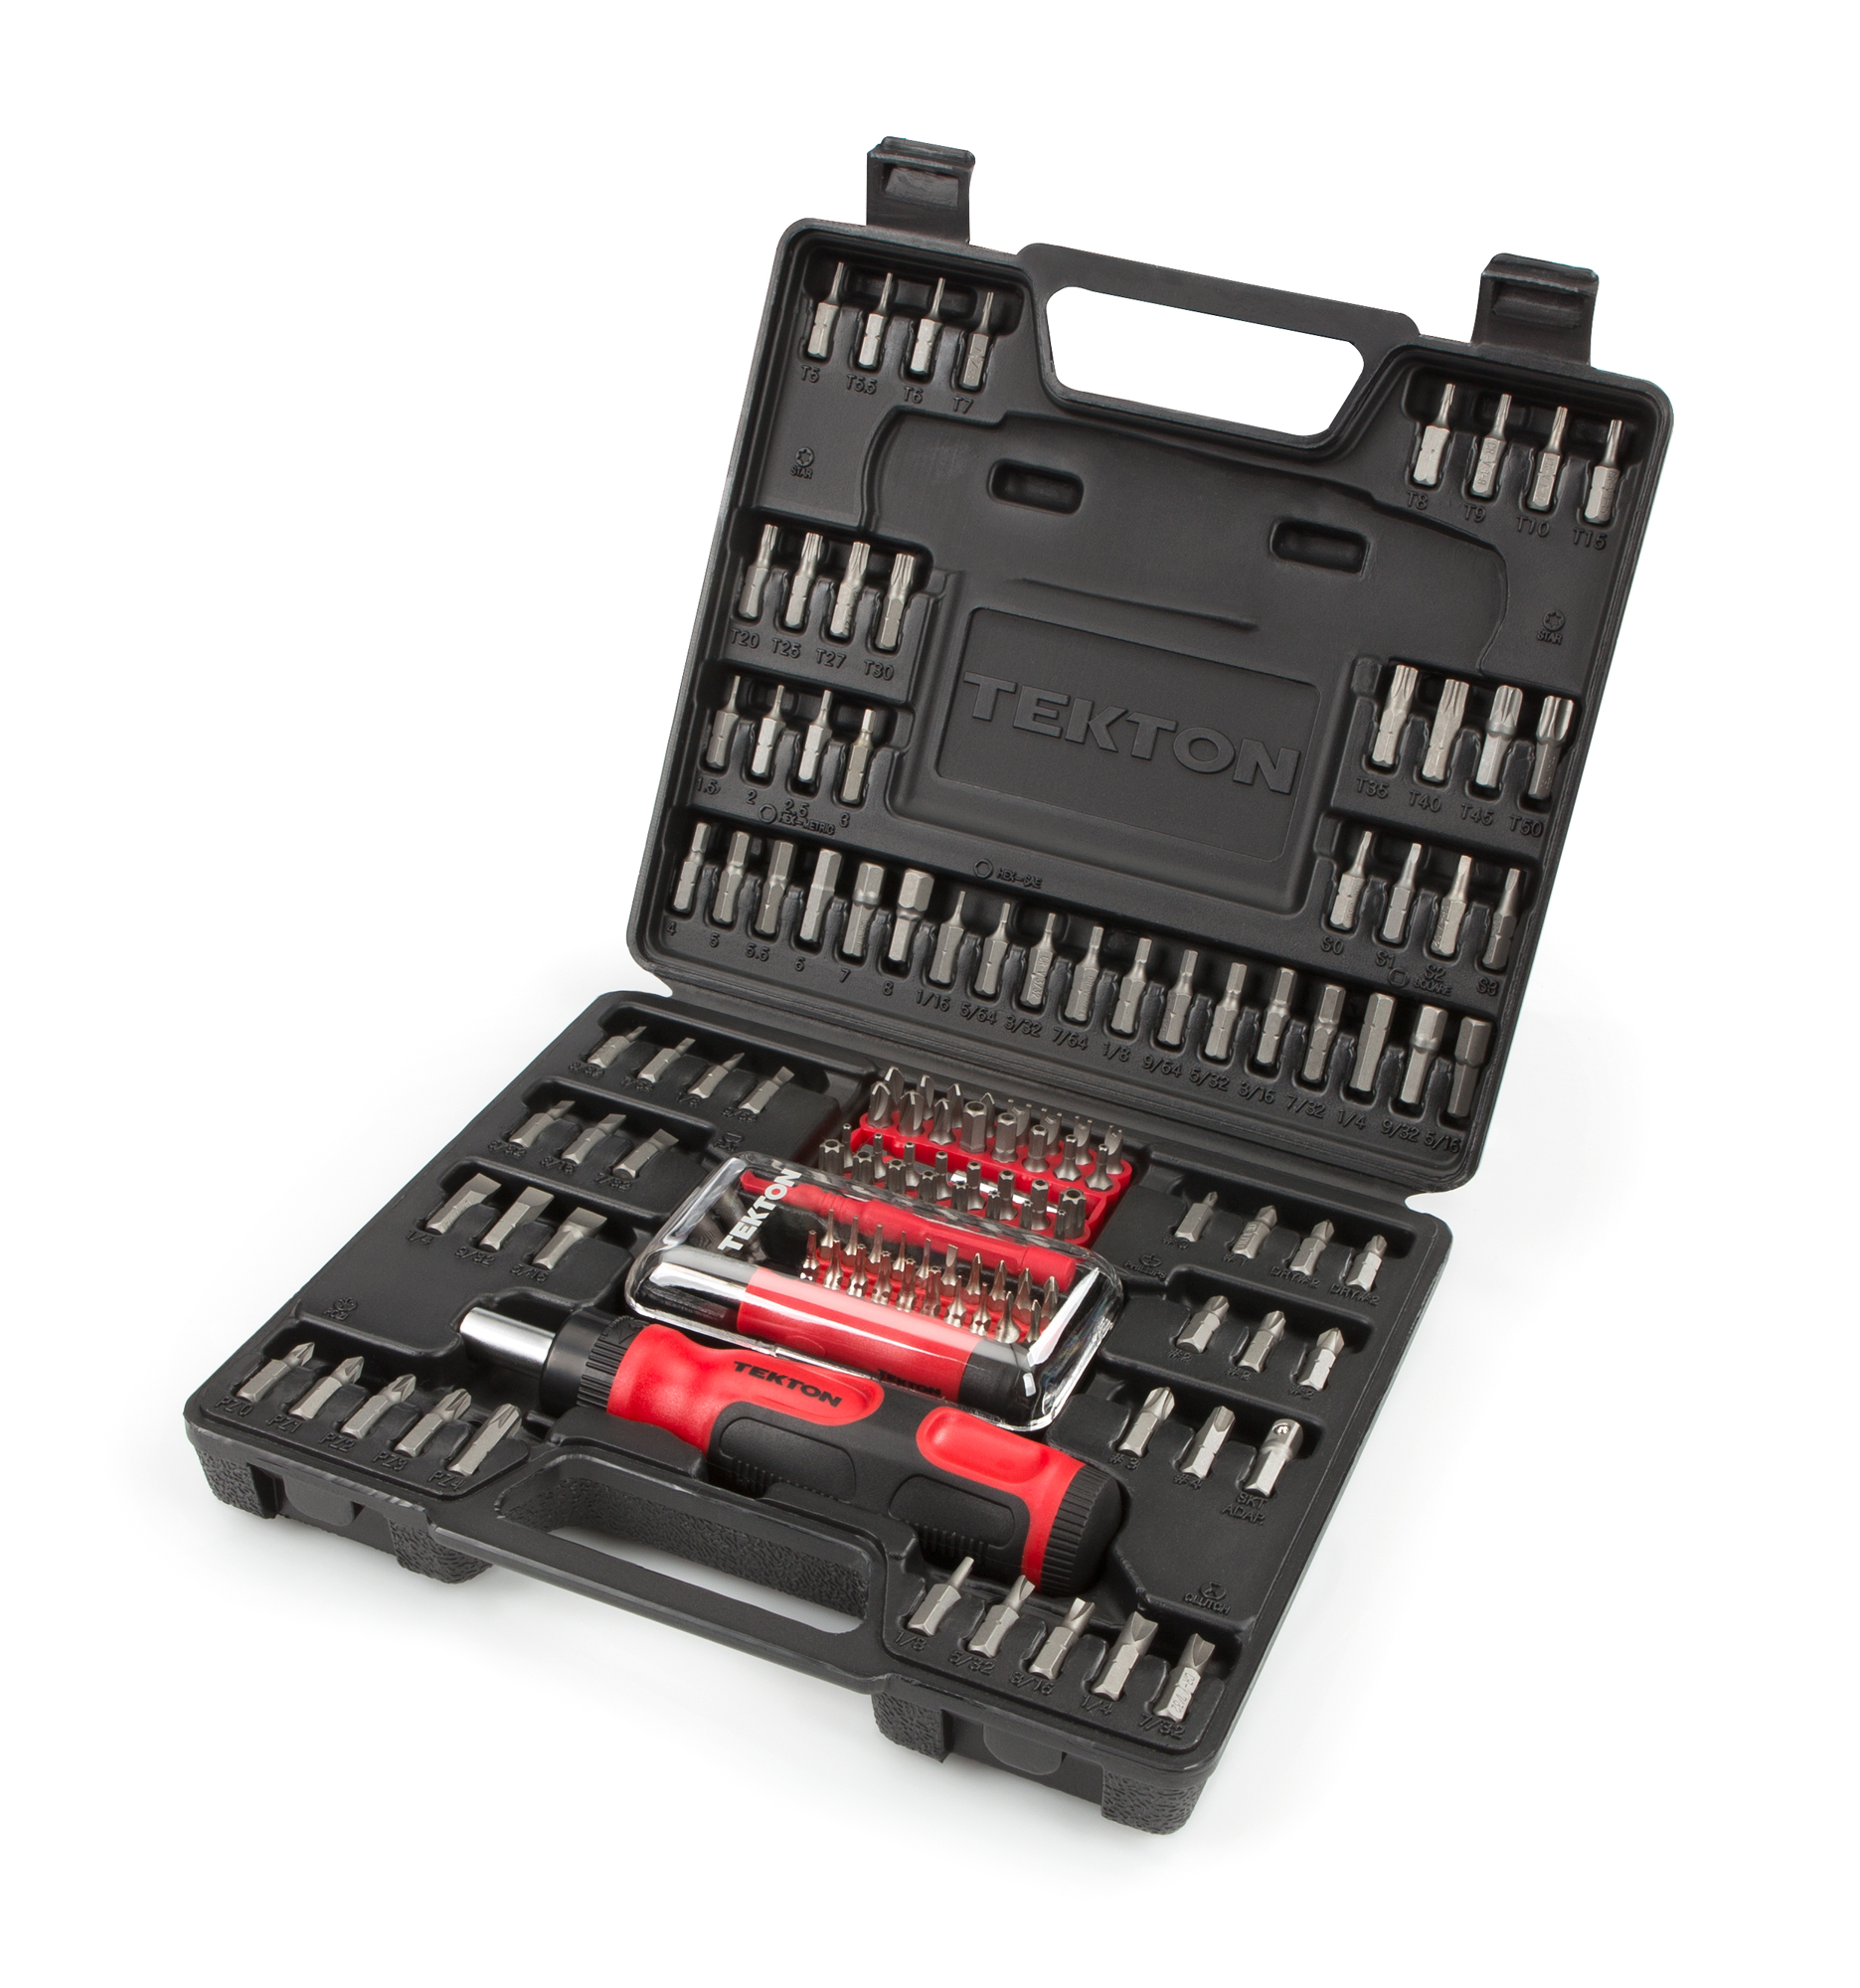 TEKTON Everybit (TM) Ratchet Screwdriver, Electronic Repair Kit and Security Bit Set, 135-Piece | 2841